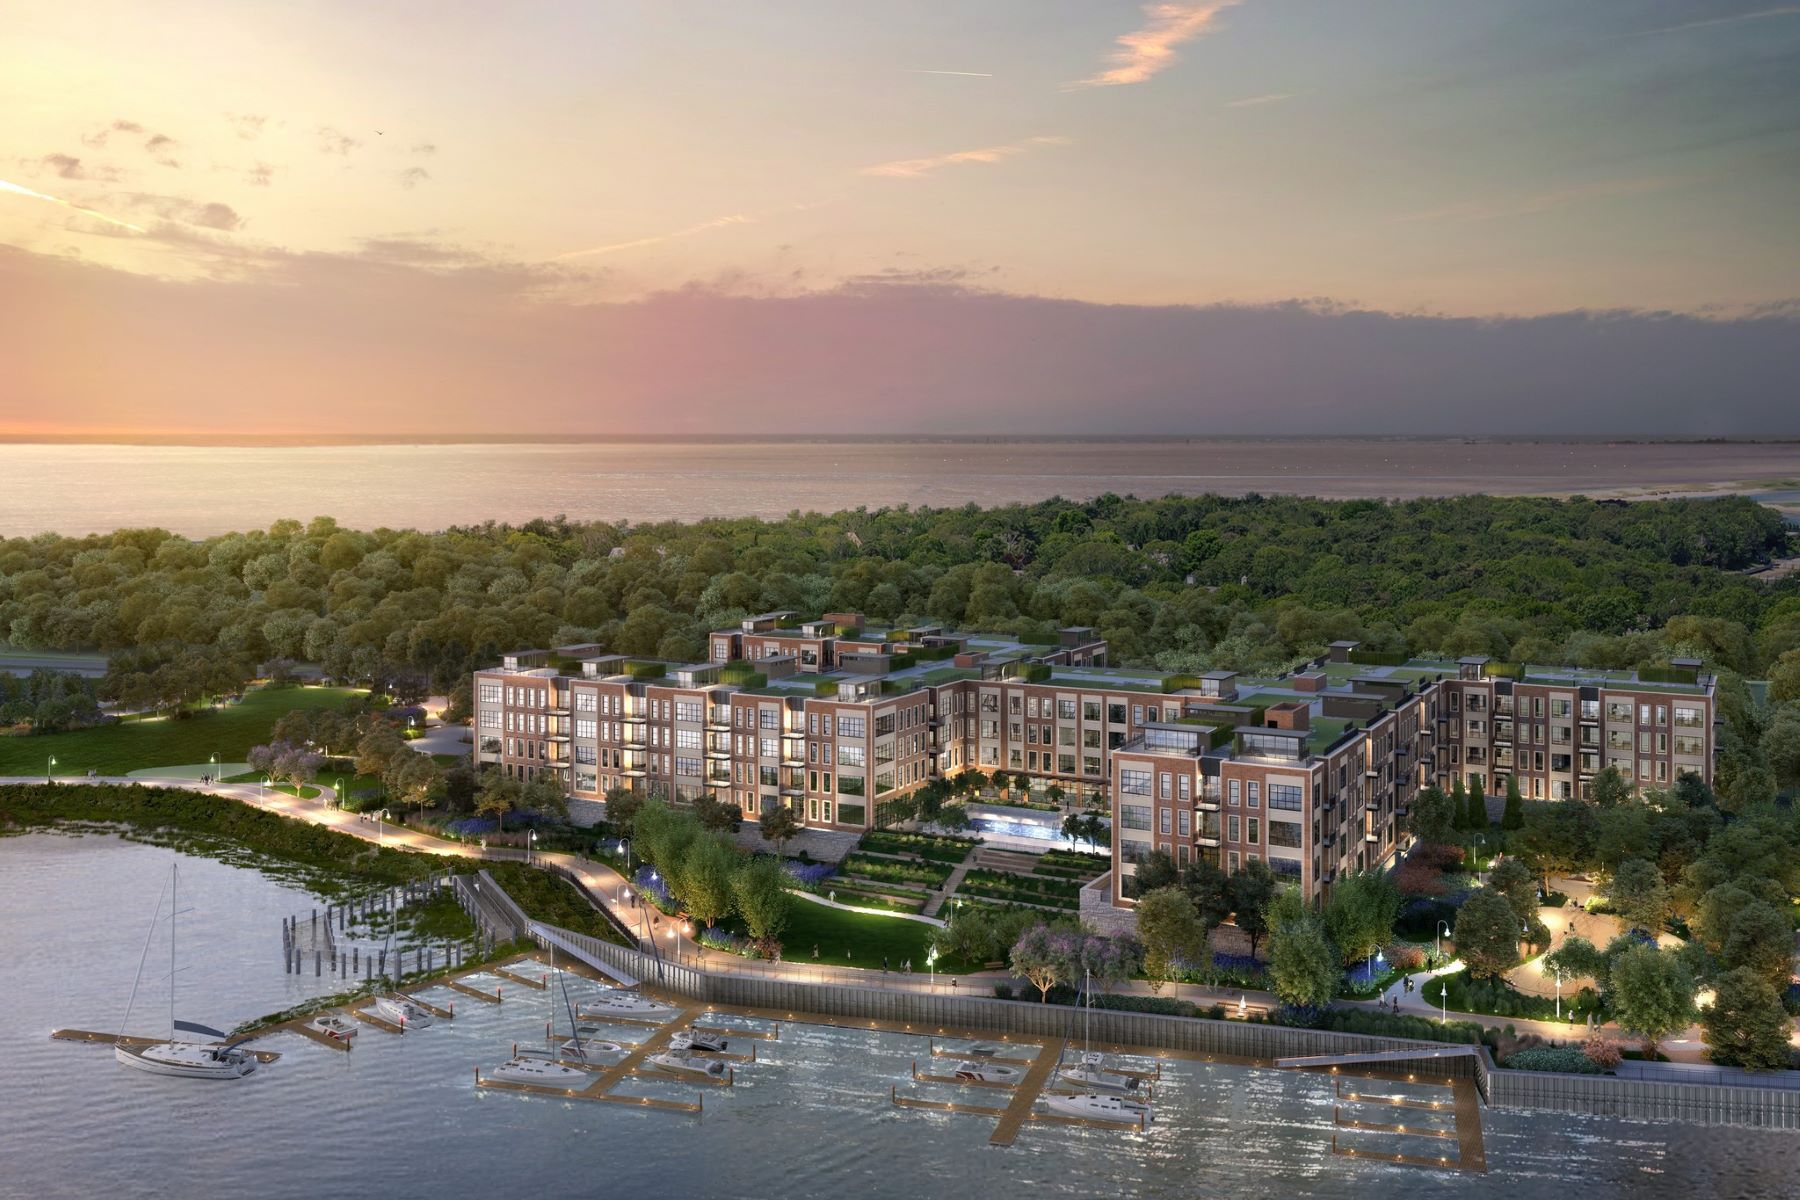 Condominiums for Active at 100 Garvies Point Rd , 1119, Glen Cove, NY 11542 100 Garvies Point Rd 1119 Glen Cove, New York 11542 United States